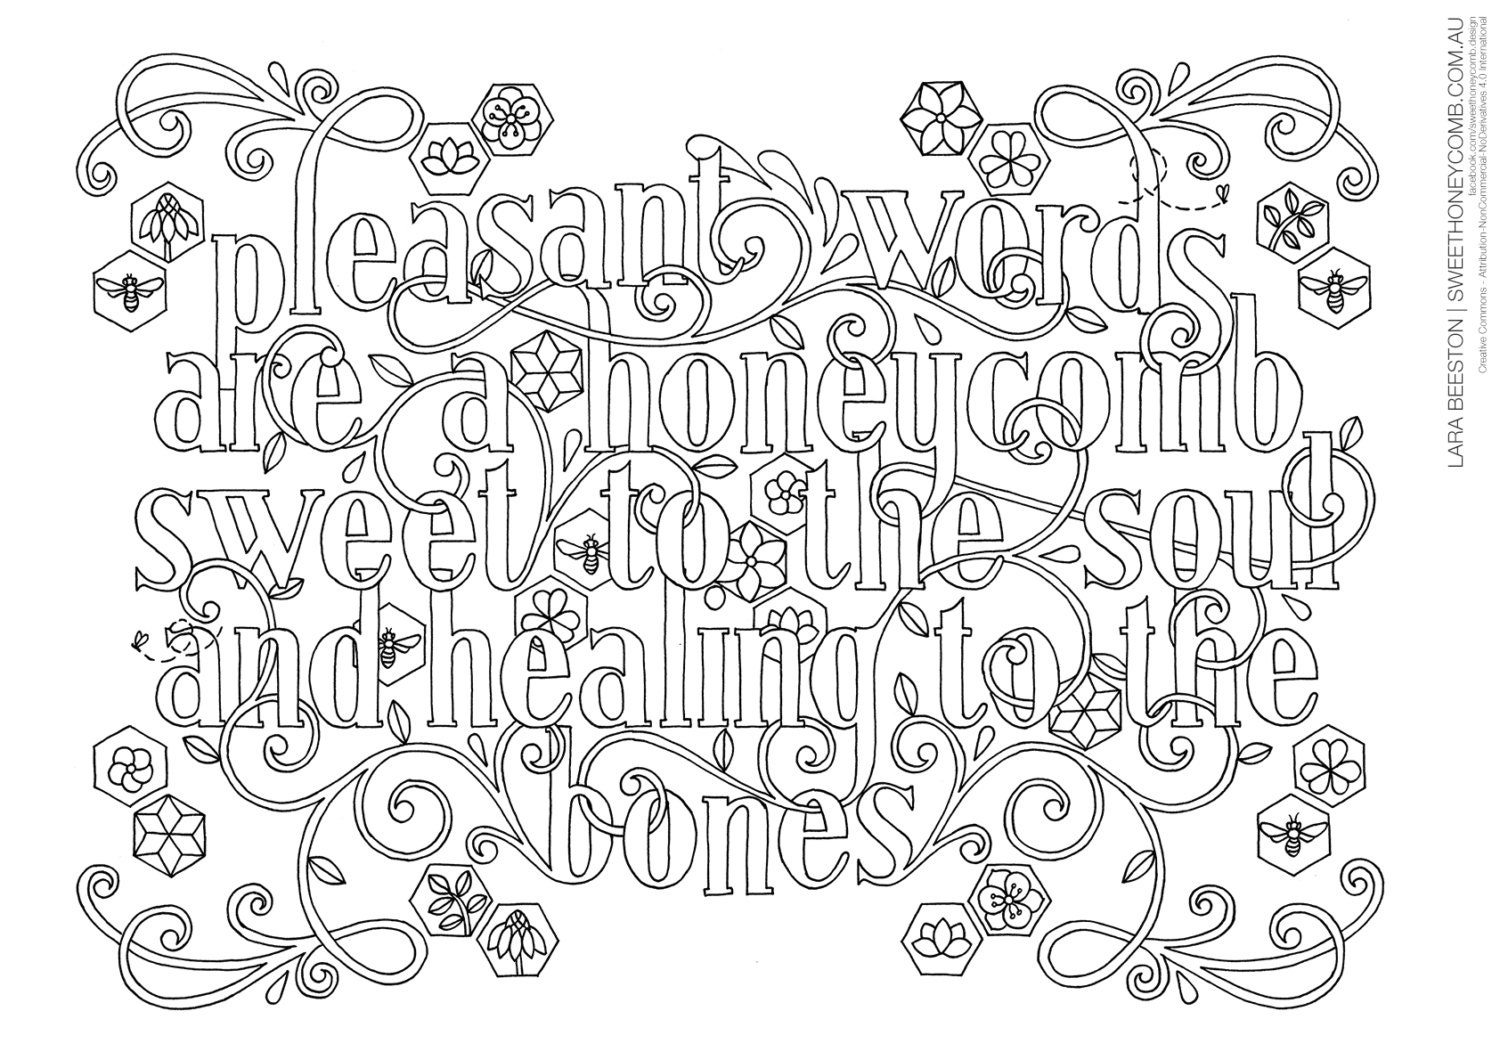 colouring page bible verse proverbs 16 24 instant